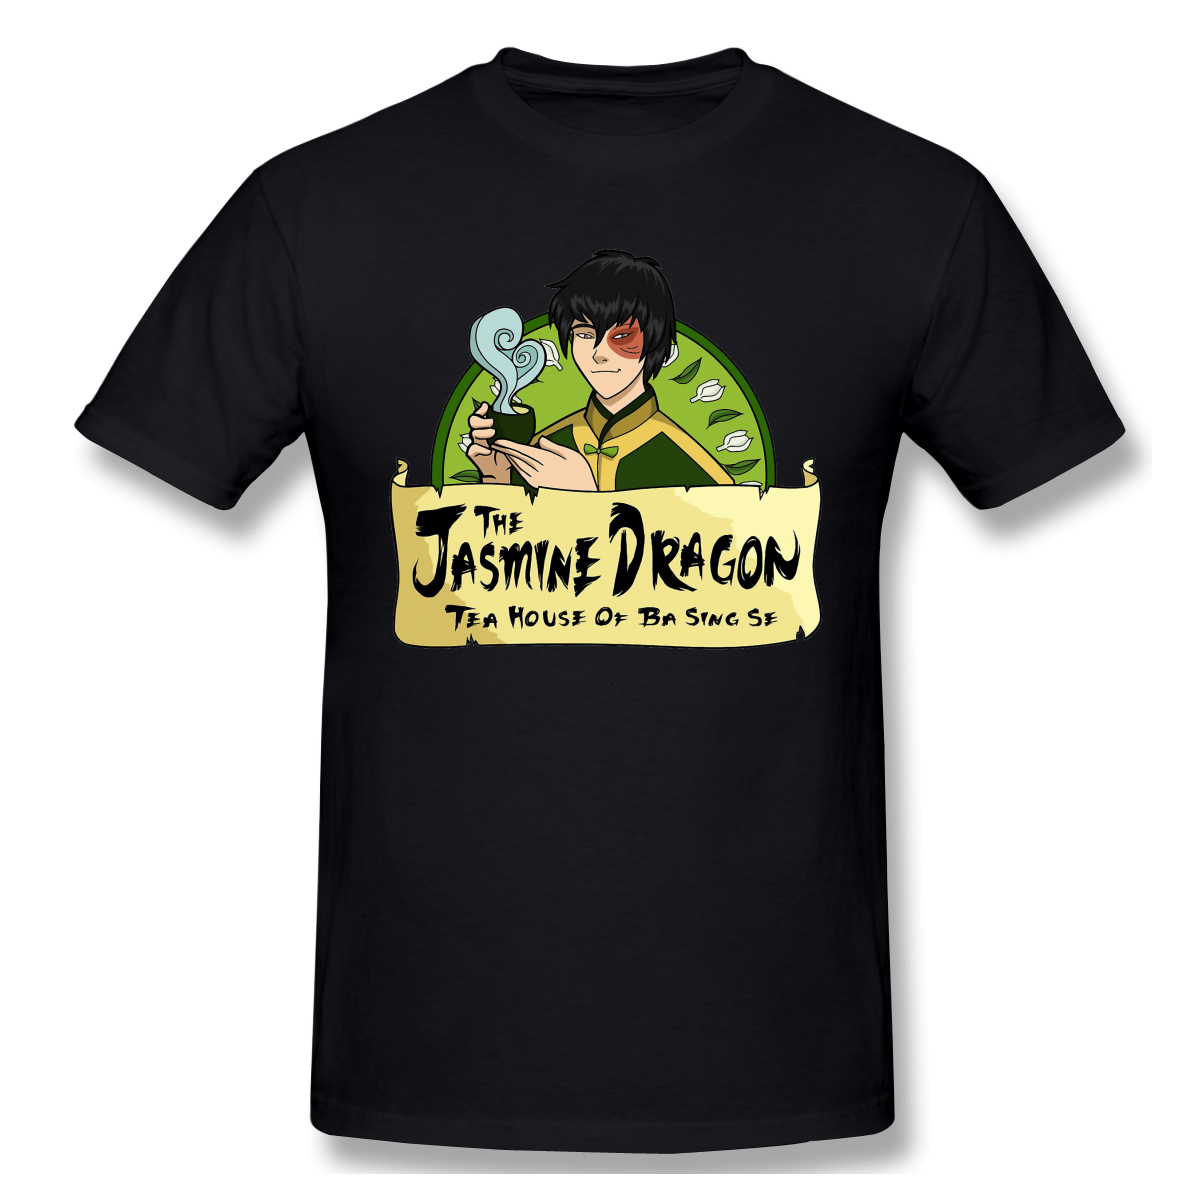 Avatar <font><b>The</b></font> <font><b>Last</b></font> Airbender Myth adventure Tees <font><b>The</b></font> Jasmine Dragon Tea House With Prince Zuko T <font><b>Shirts</b></font> Round Collar Clothing image